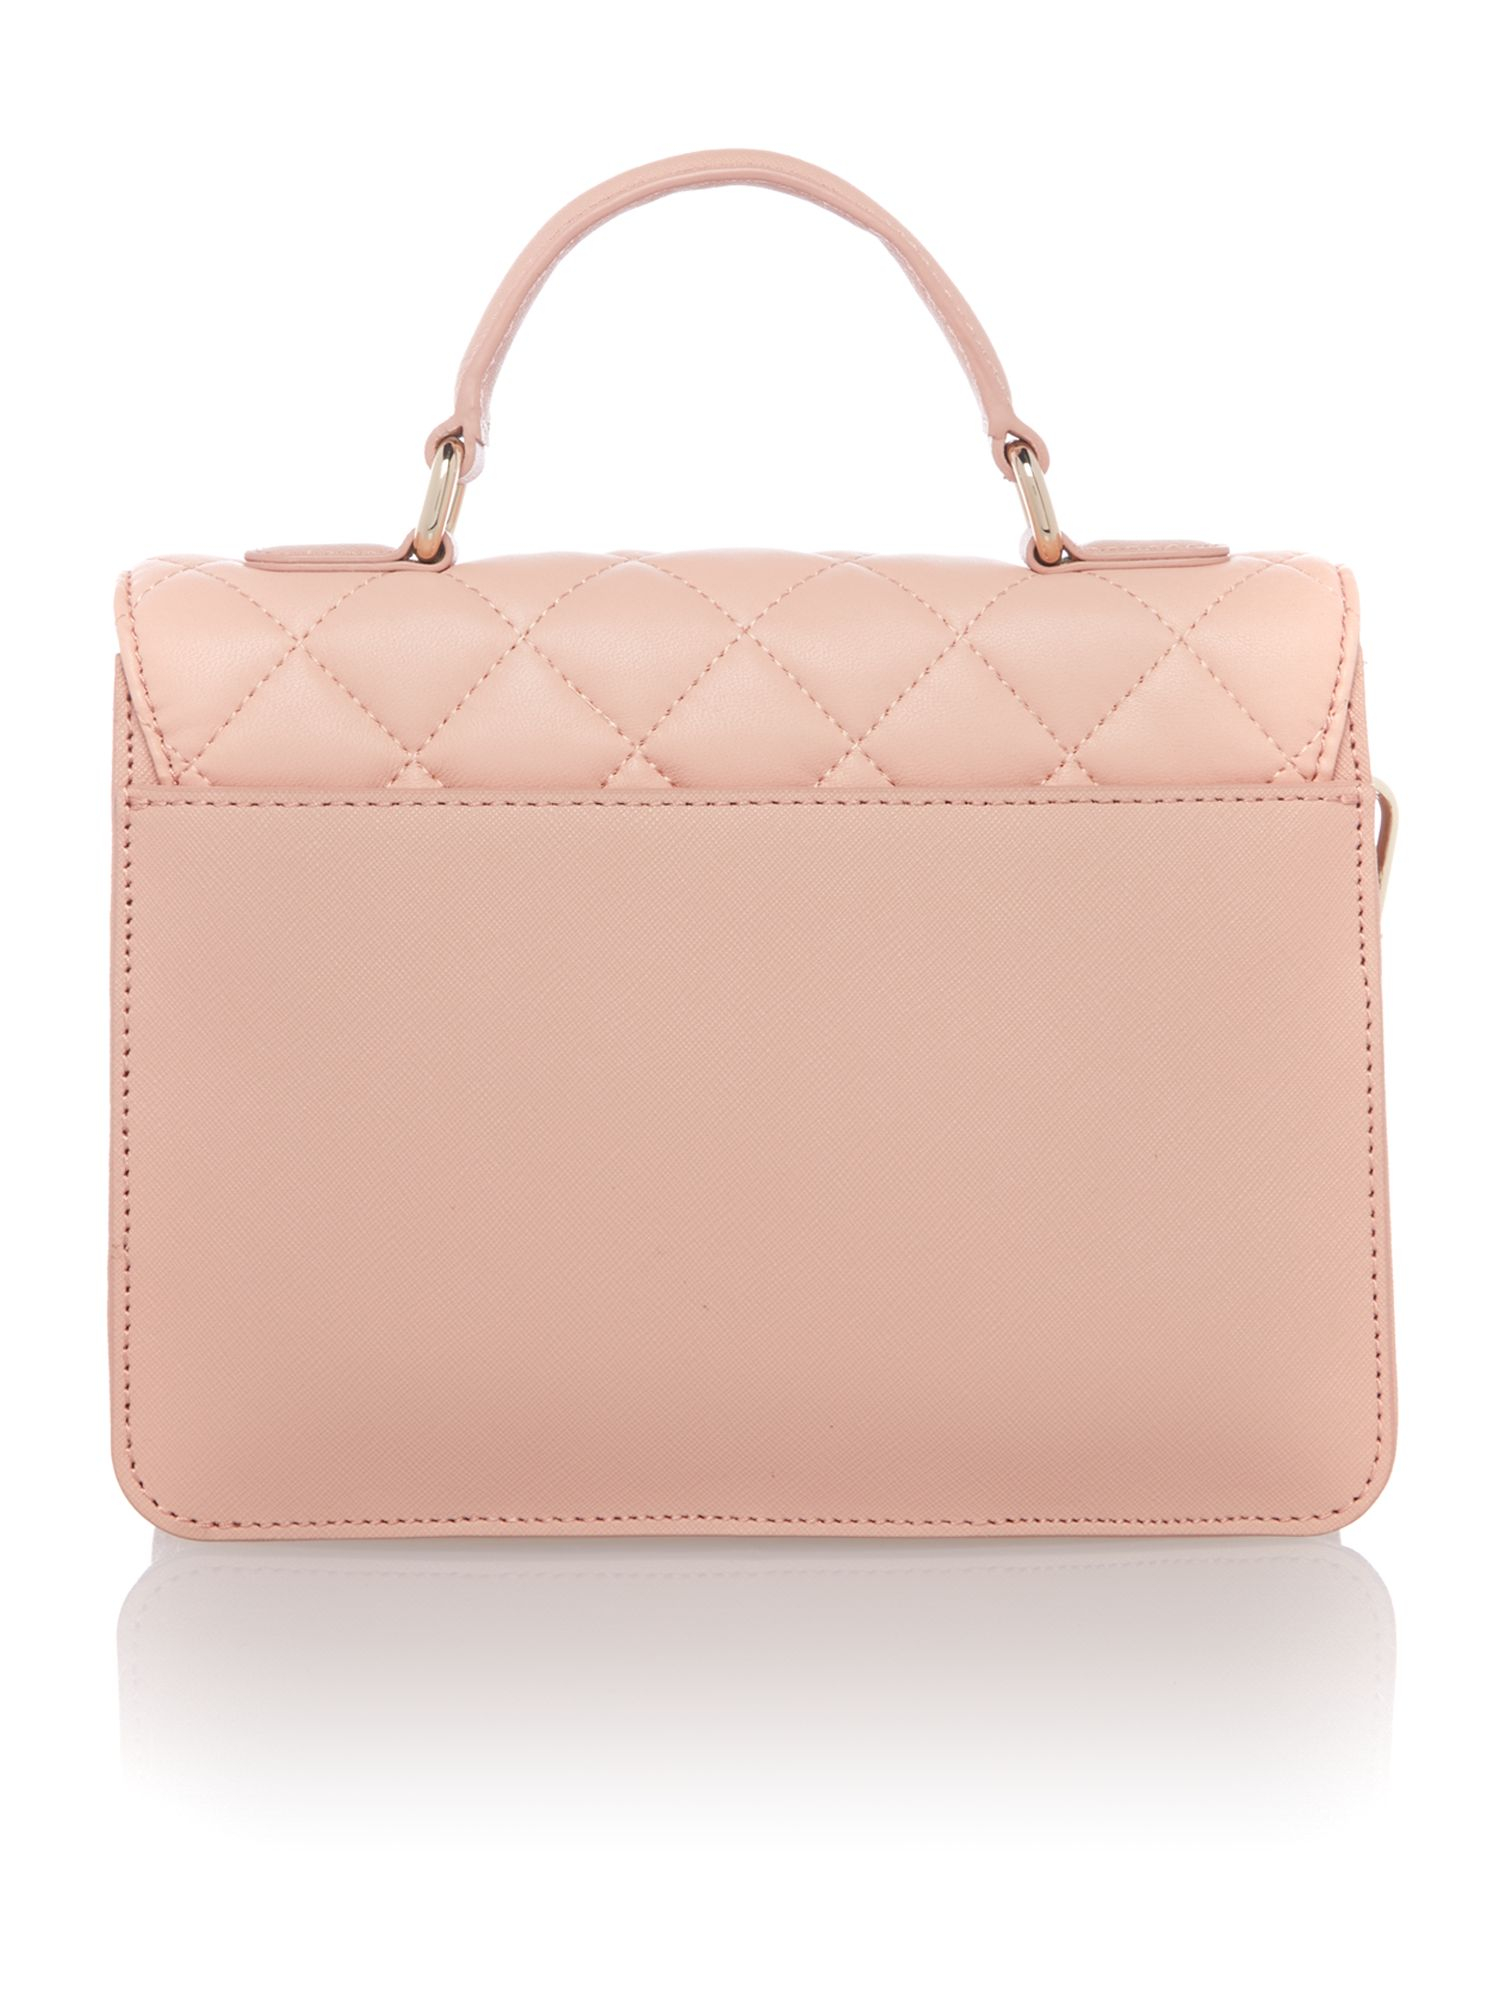 DKNY Gansevoort Light Pink Quilted Flap Over Crossbody